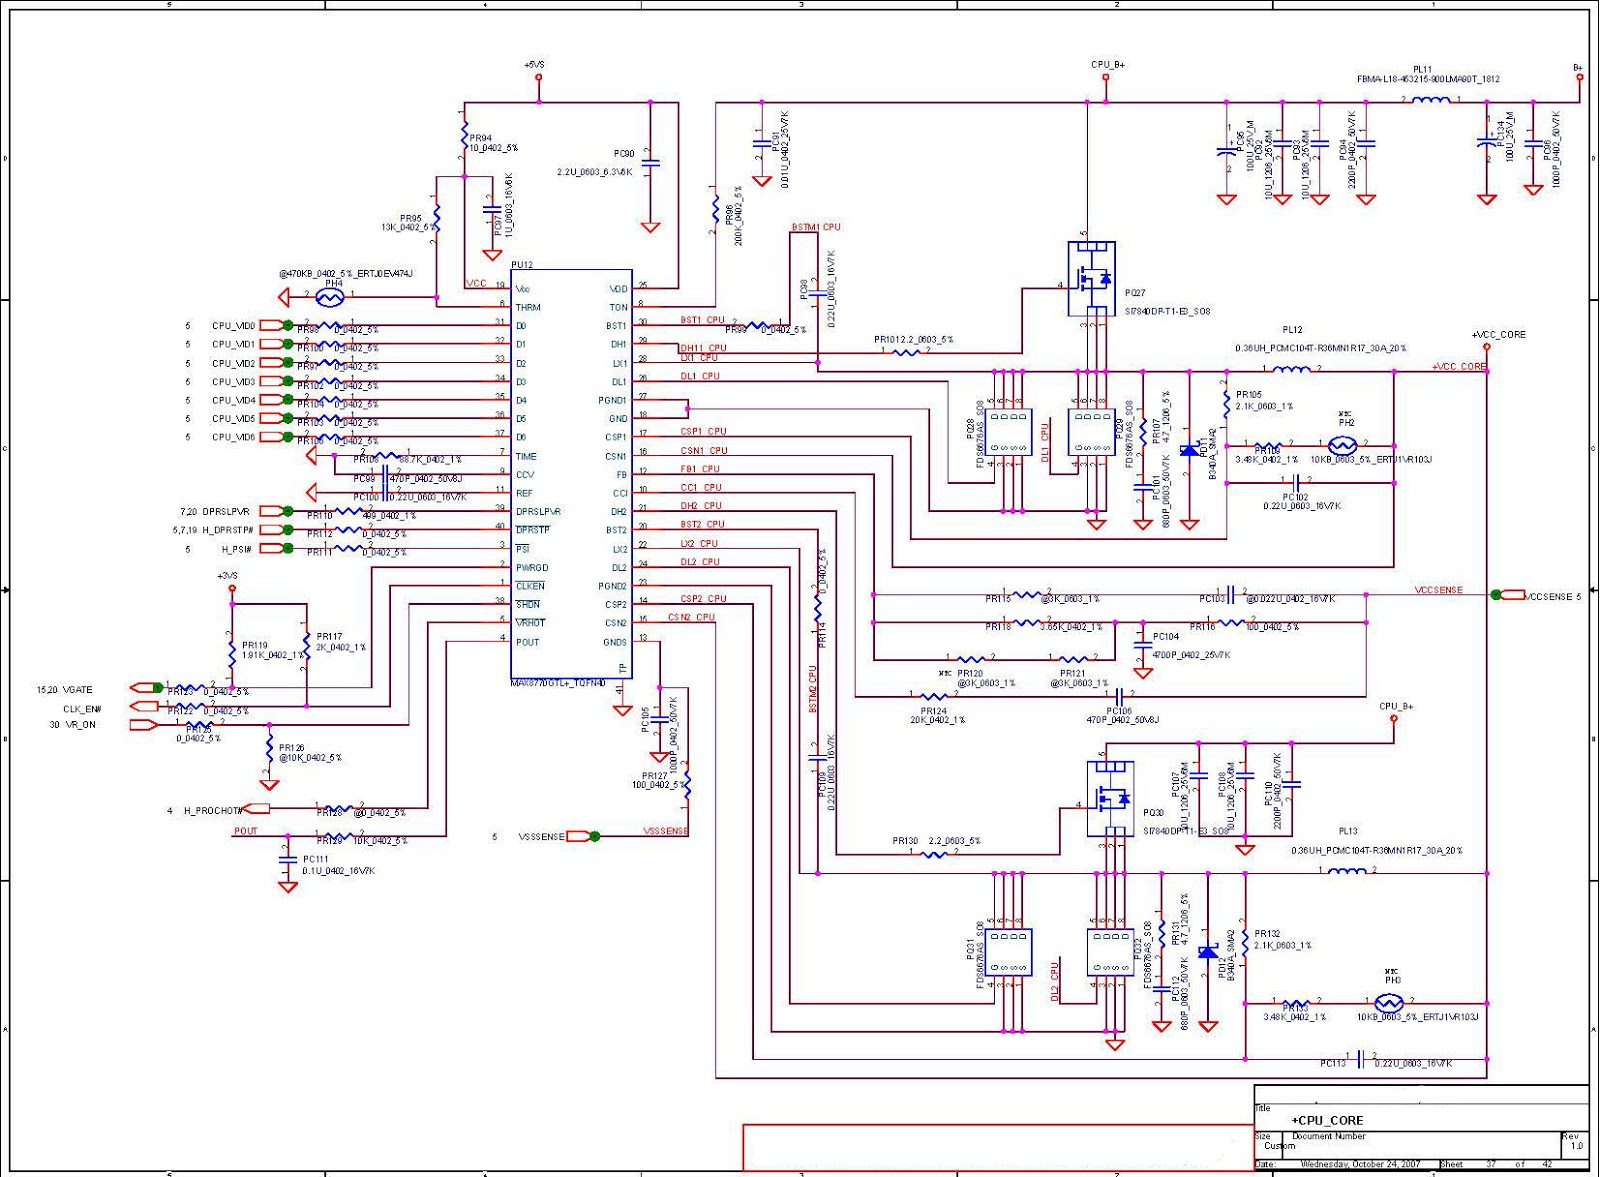 Nxshield m schematic the wiring diagram readingrat neo l schematic the wiring diagram schematic asfbconference2016 Gallery